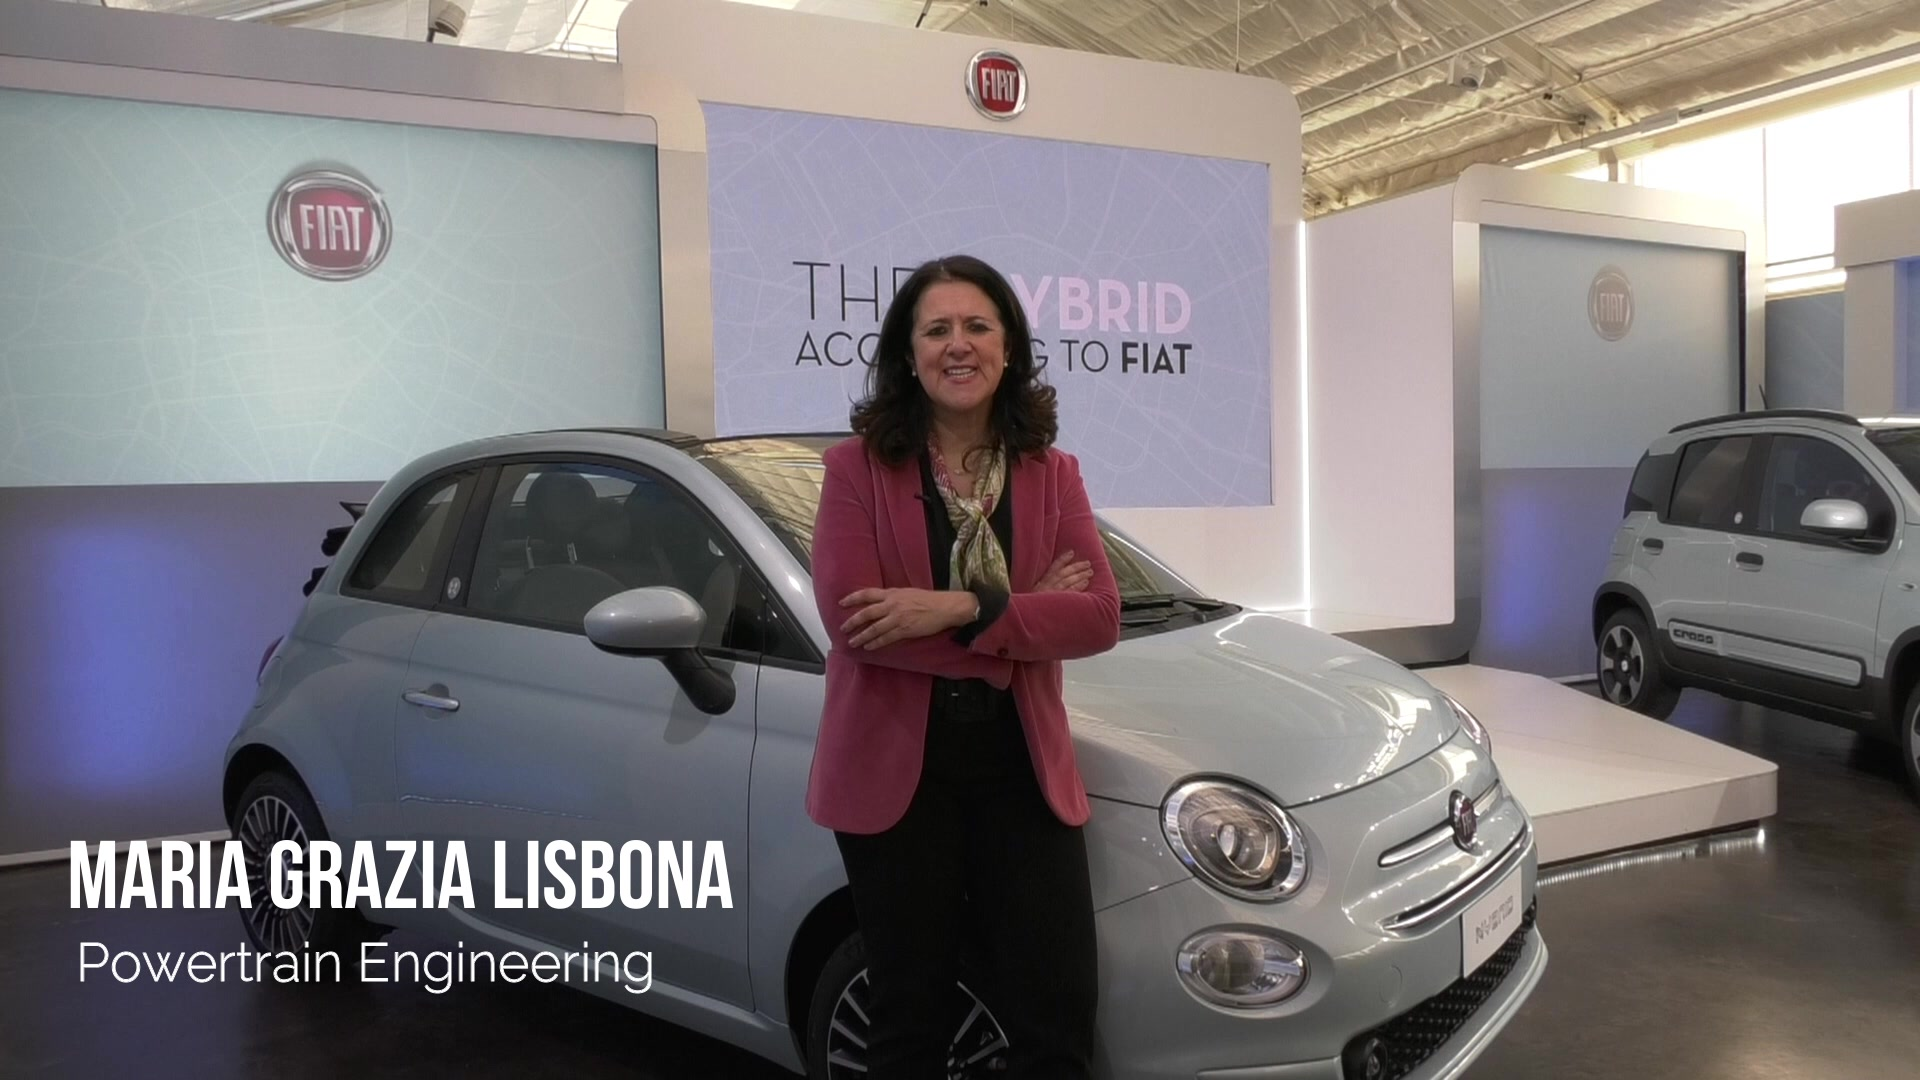 Interview with Maria Grazia Lisbona, Powertrain Engineering